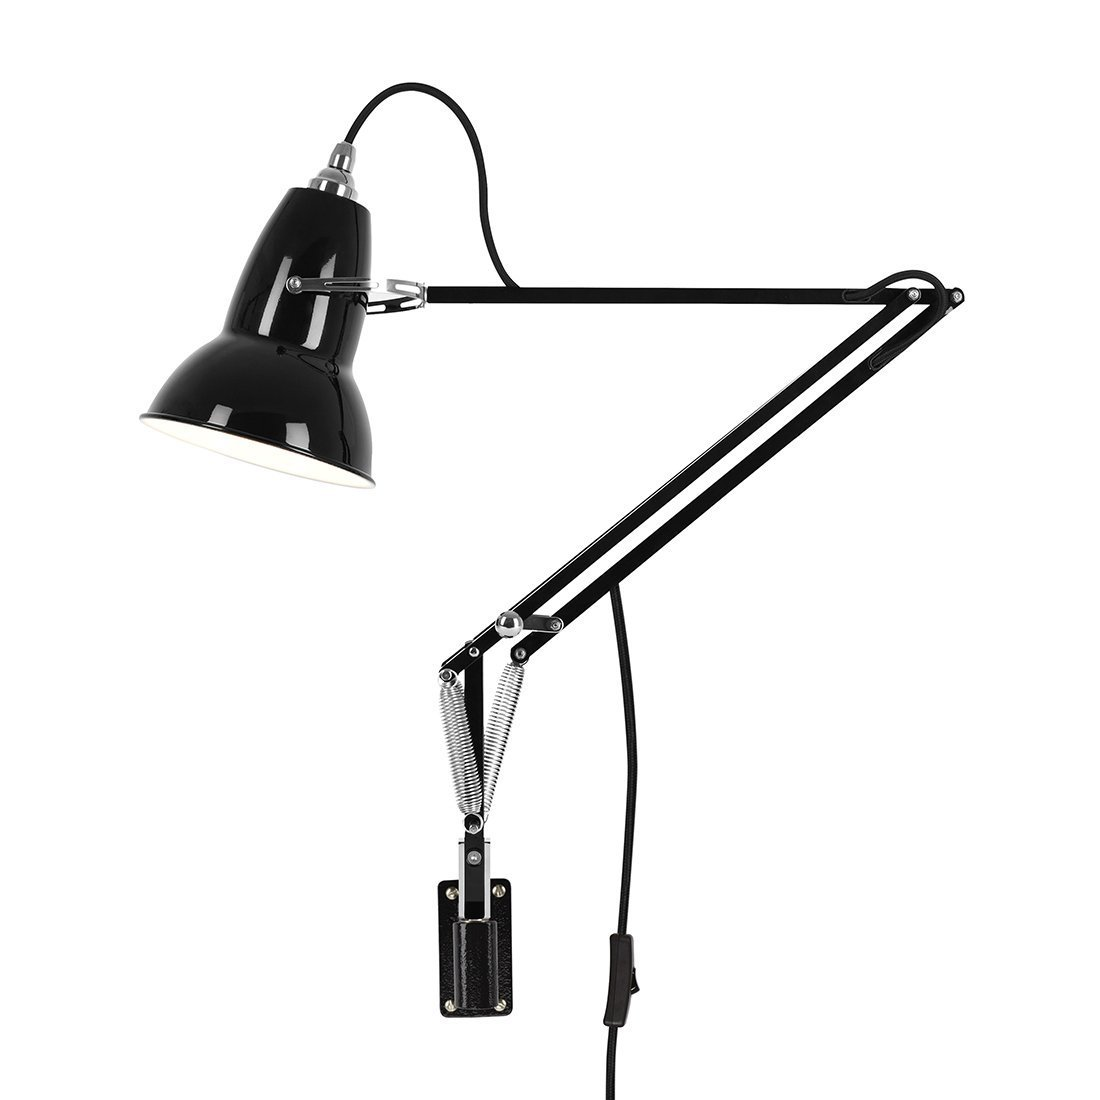 Anglepoise Original 1227 Wall Mounted Jet Black Wandlamp